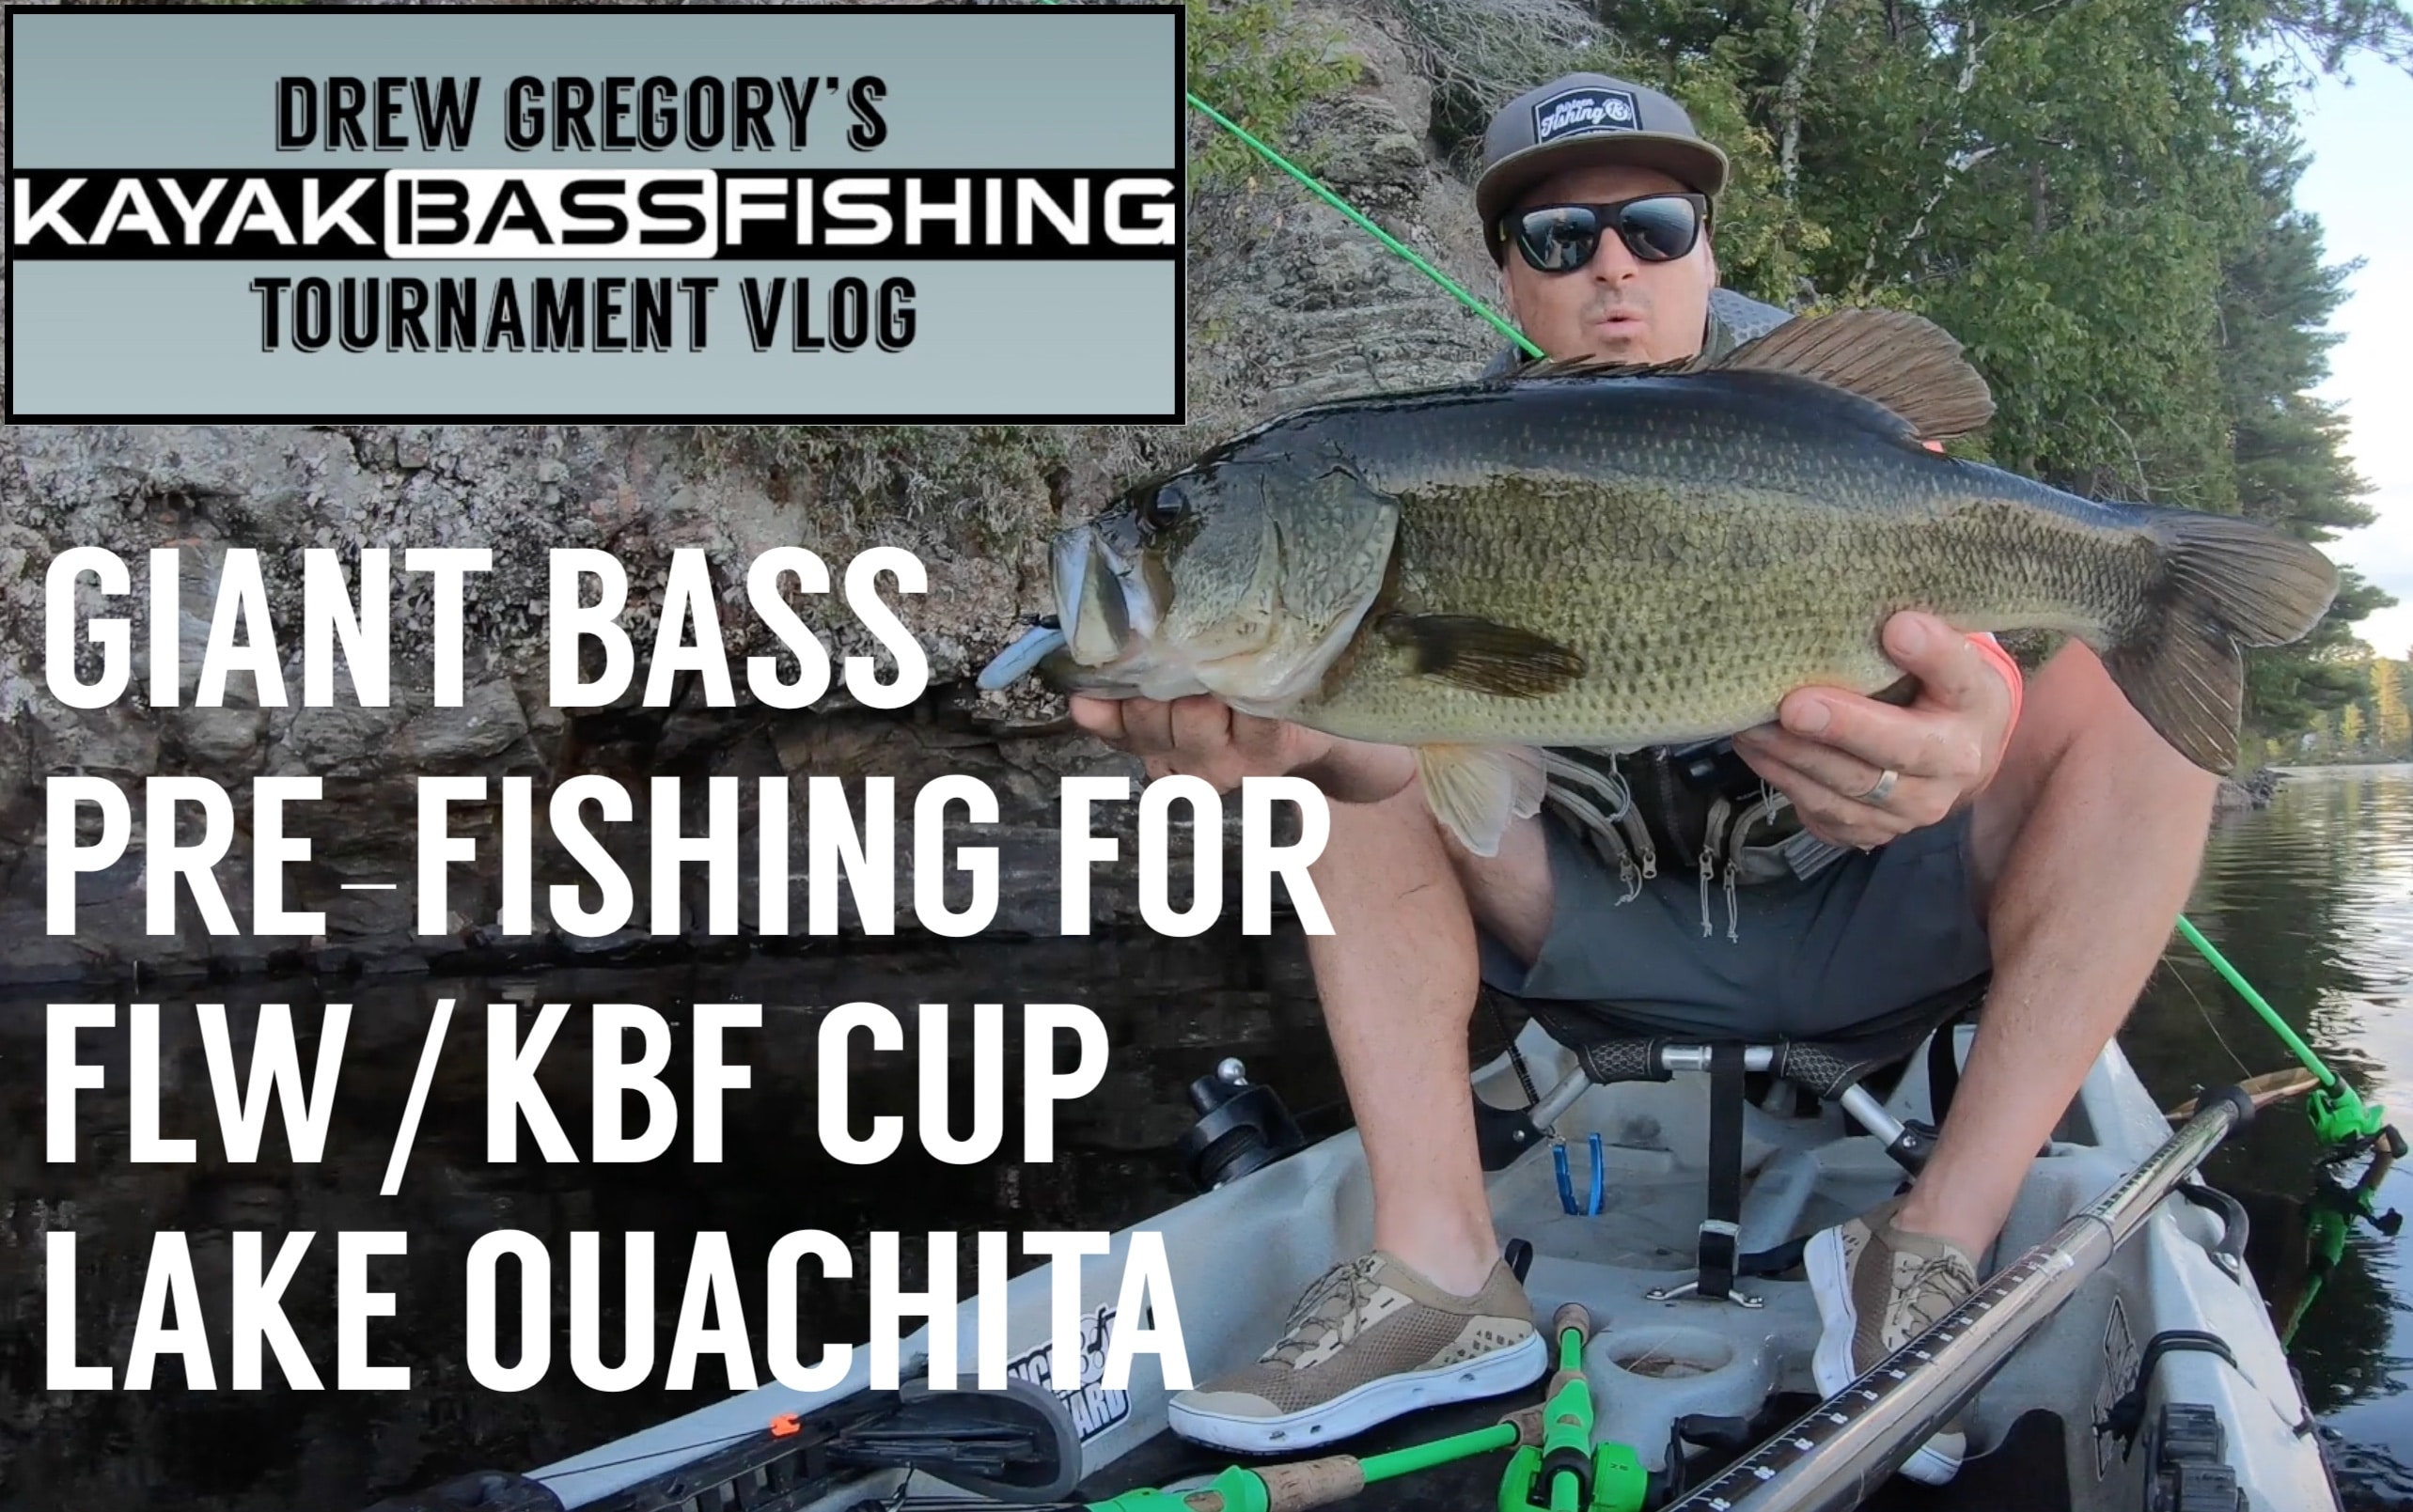 VIDEO: Drew Gregory's KBF/FLW Tournament Vlog